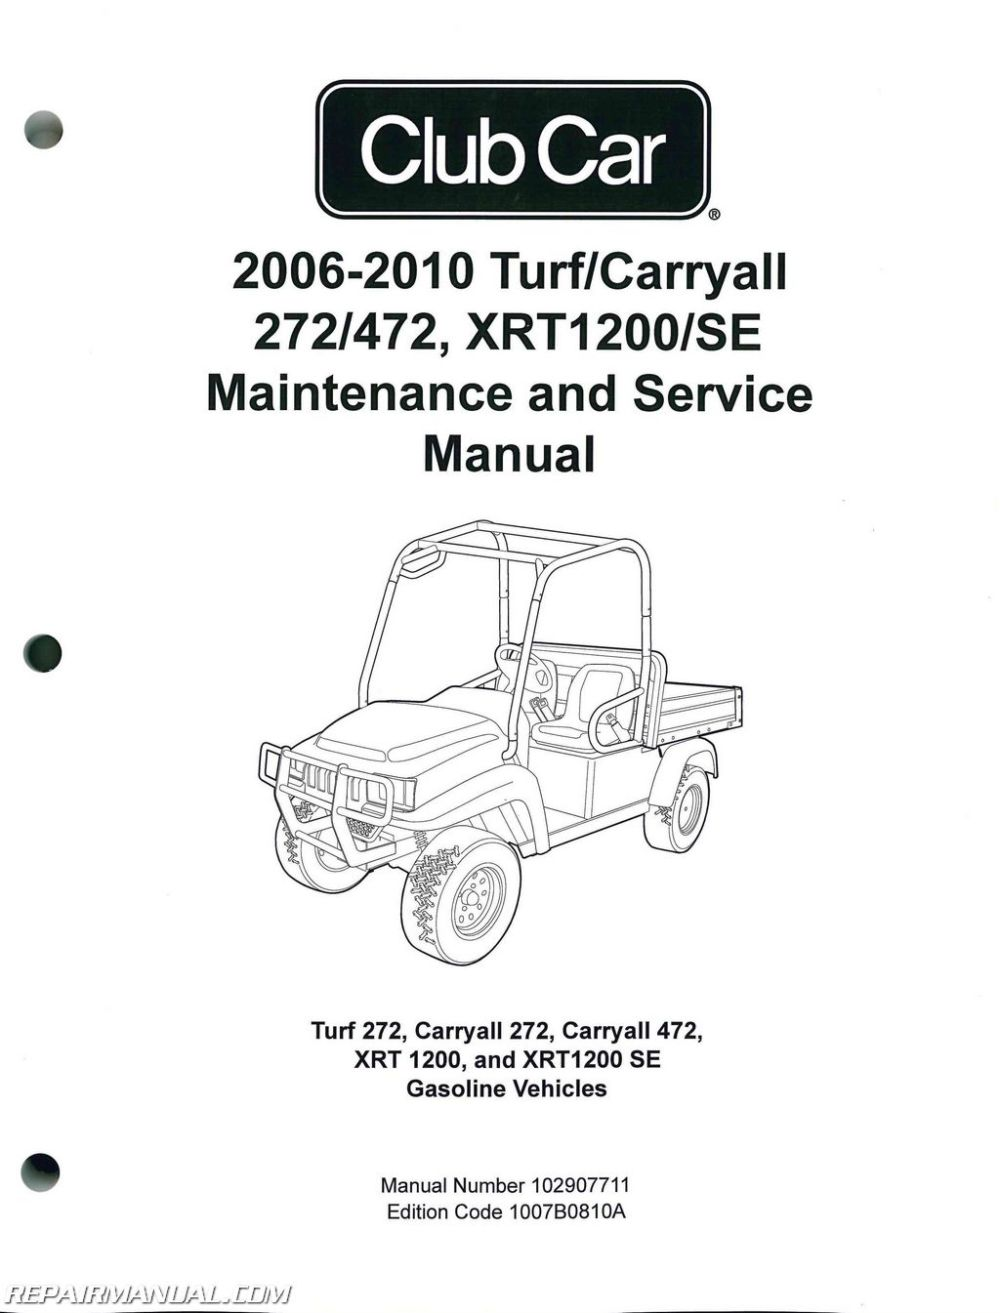 medium resolution of 2006 2010 club car turf carryall 272 472 xrt1200 se turf 272 carryall 272 carryall 472 xrt 1200 and xrt1200 se gas service manual